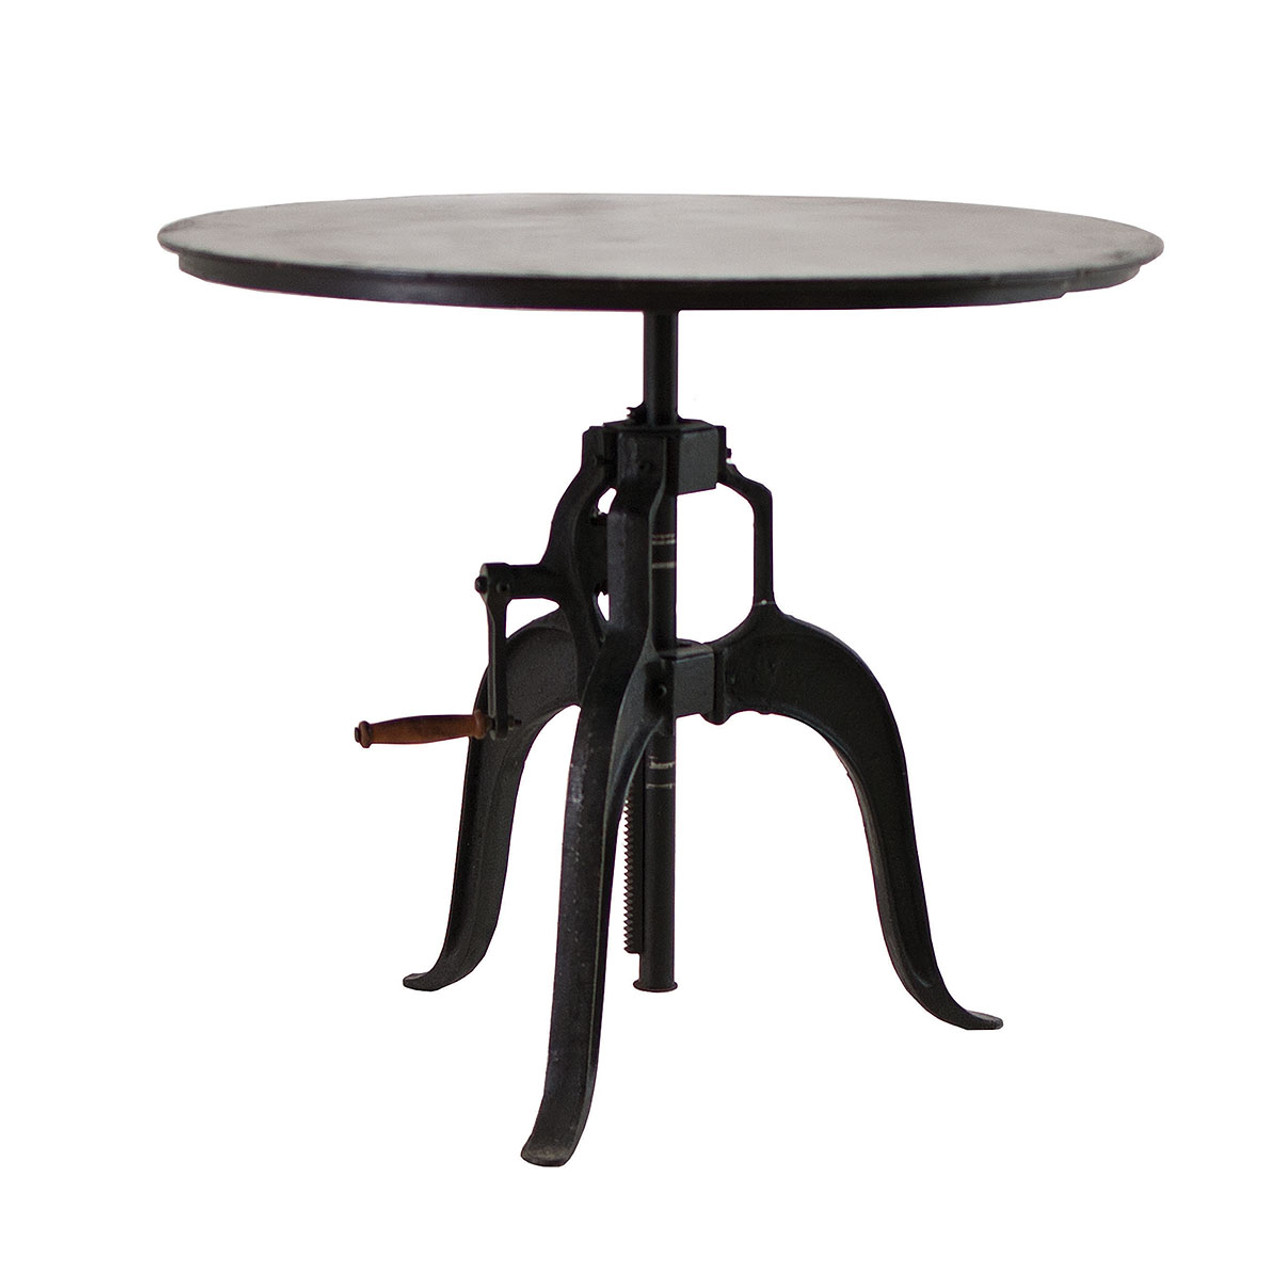 Adjustable height crank dining table 36 zin home adjustable height crank dining table 36 watchthetrailerfo